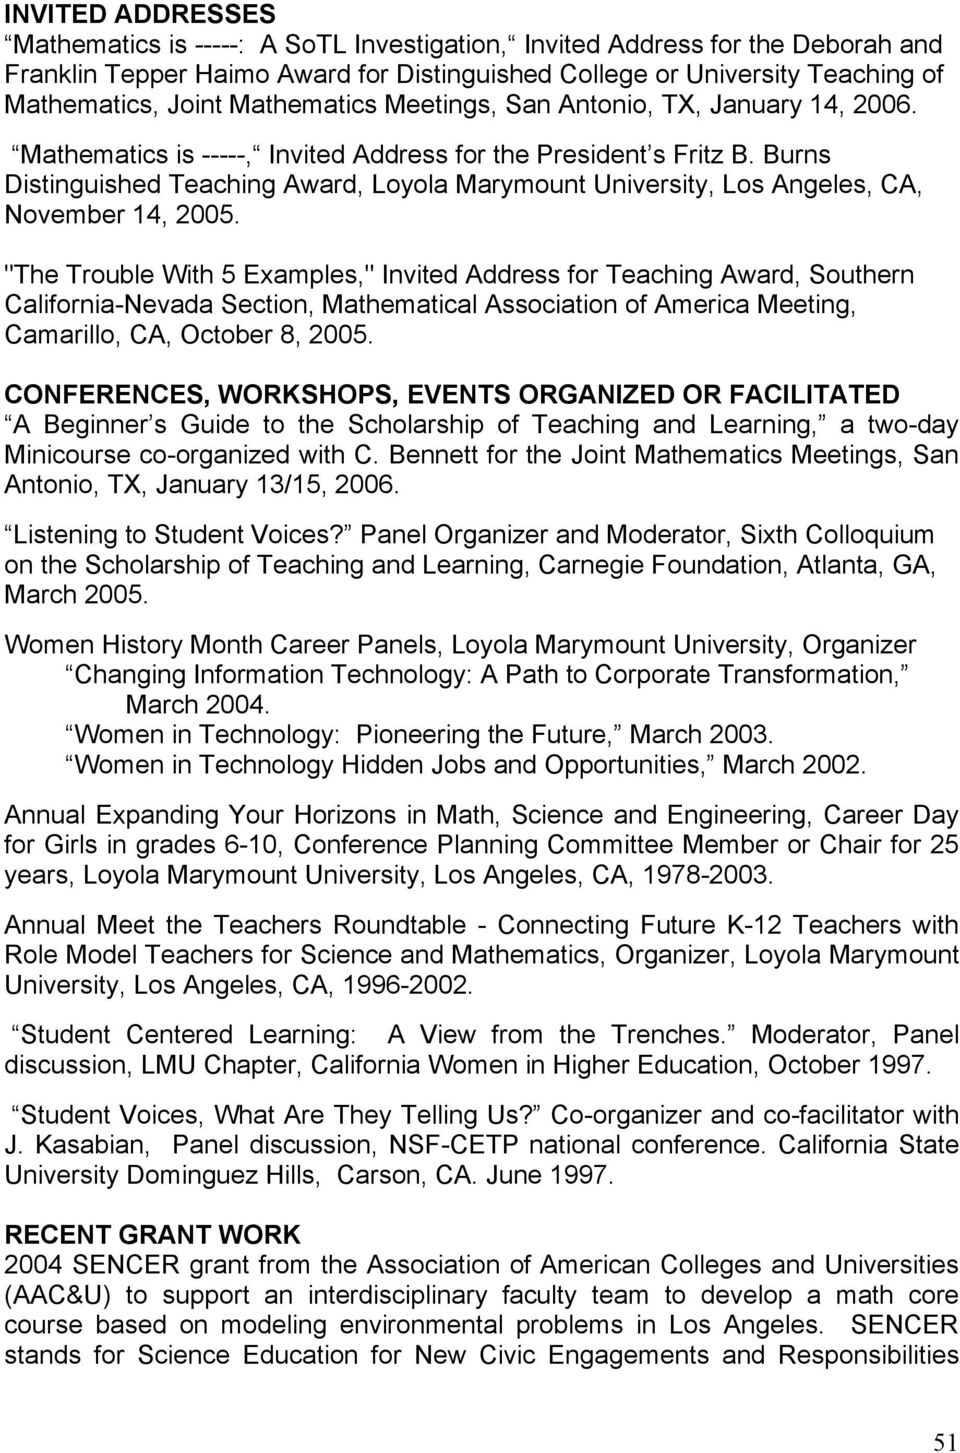 """The Trouble With 5 Examples,"" Invited Address for Teaching Award, Southern California-Nevada Section, Mathematical Association of America Meeting, Camarillo, CA, October 8, 2005."